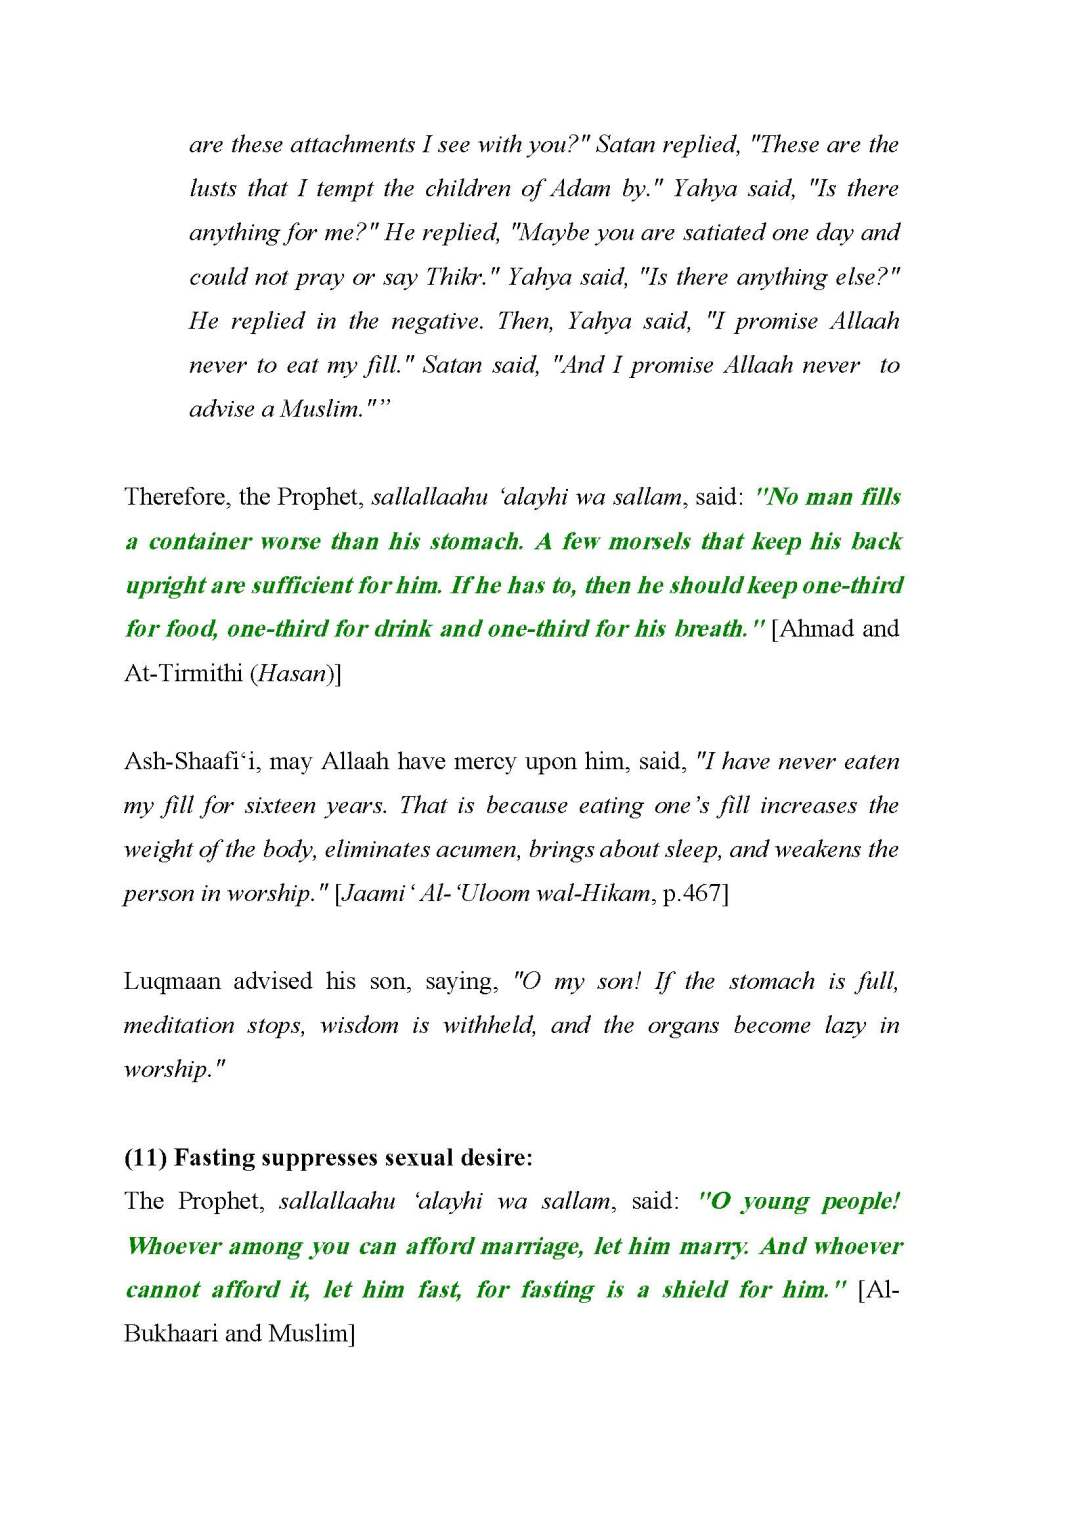 Benefits_and_Secrets_of_Fasting_Page_30